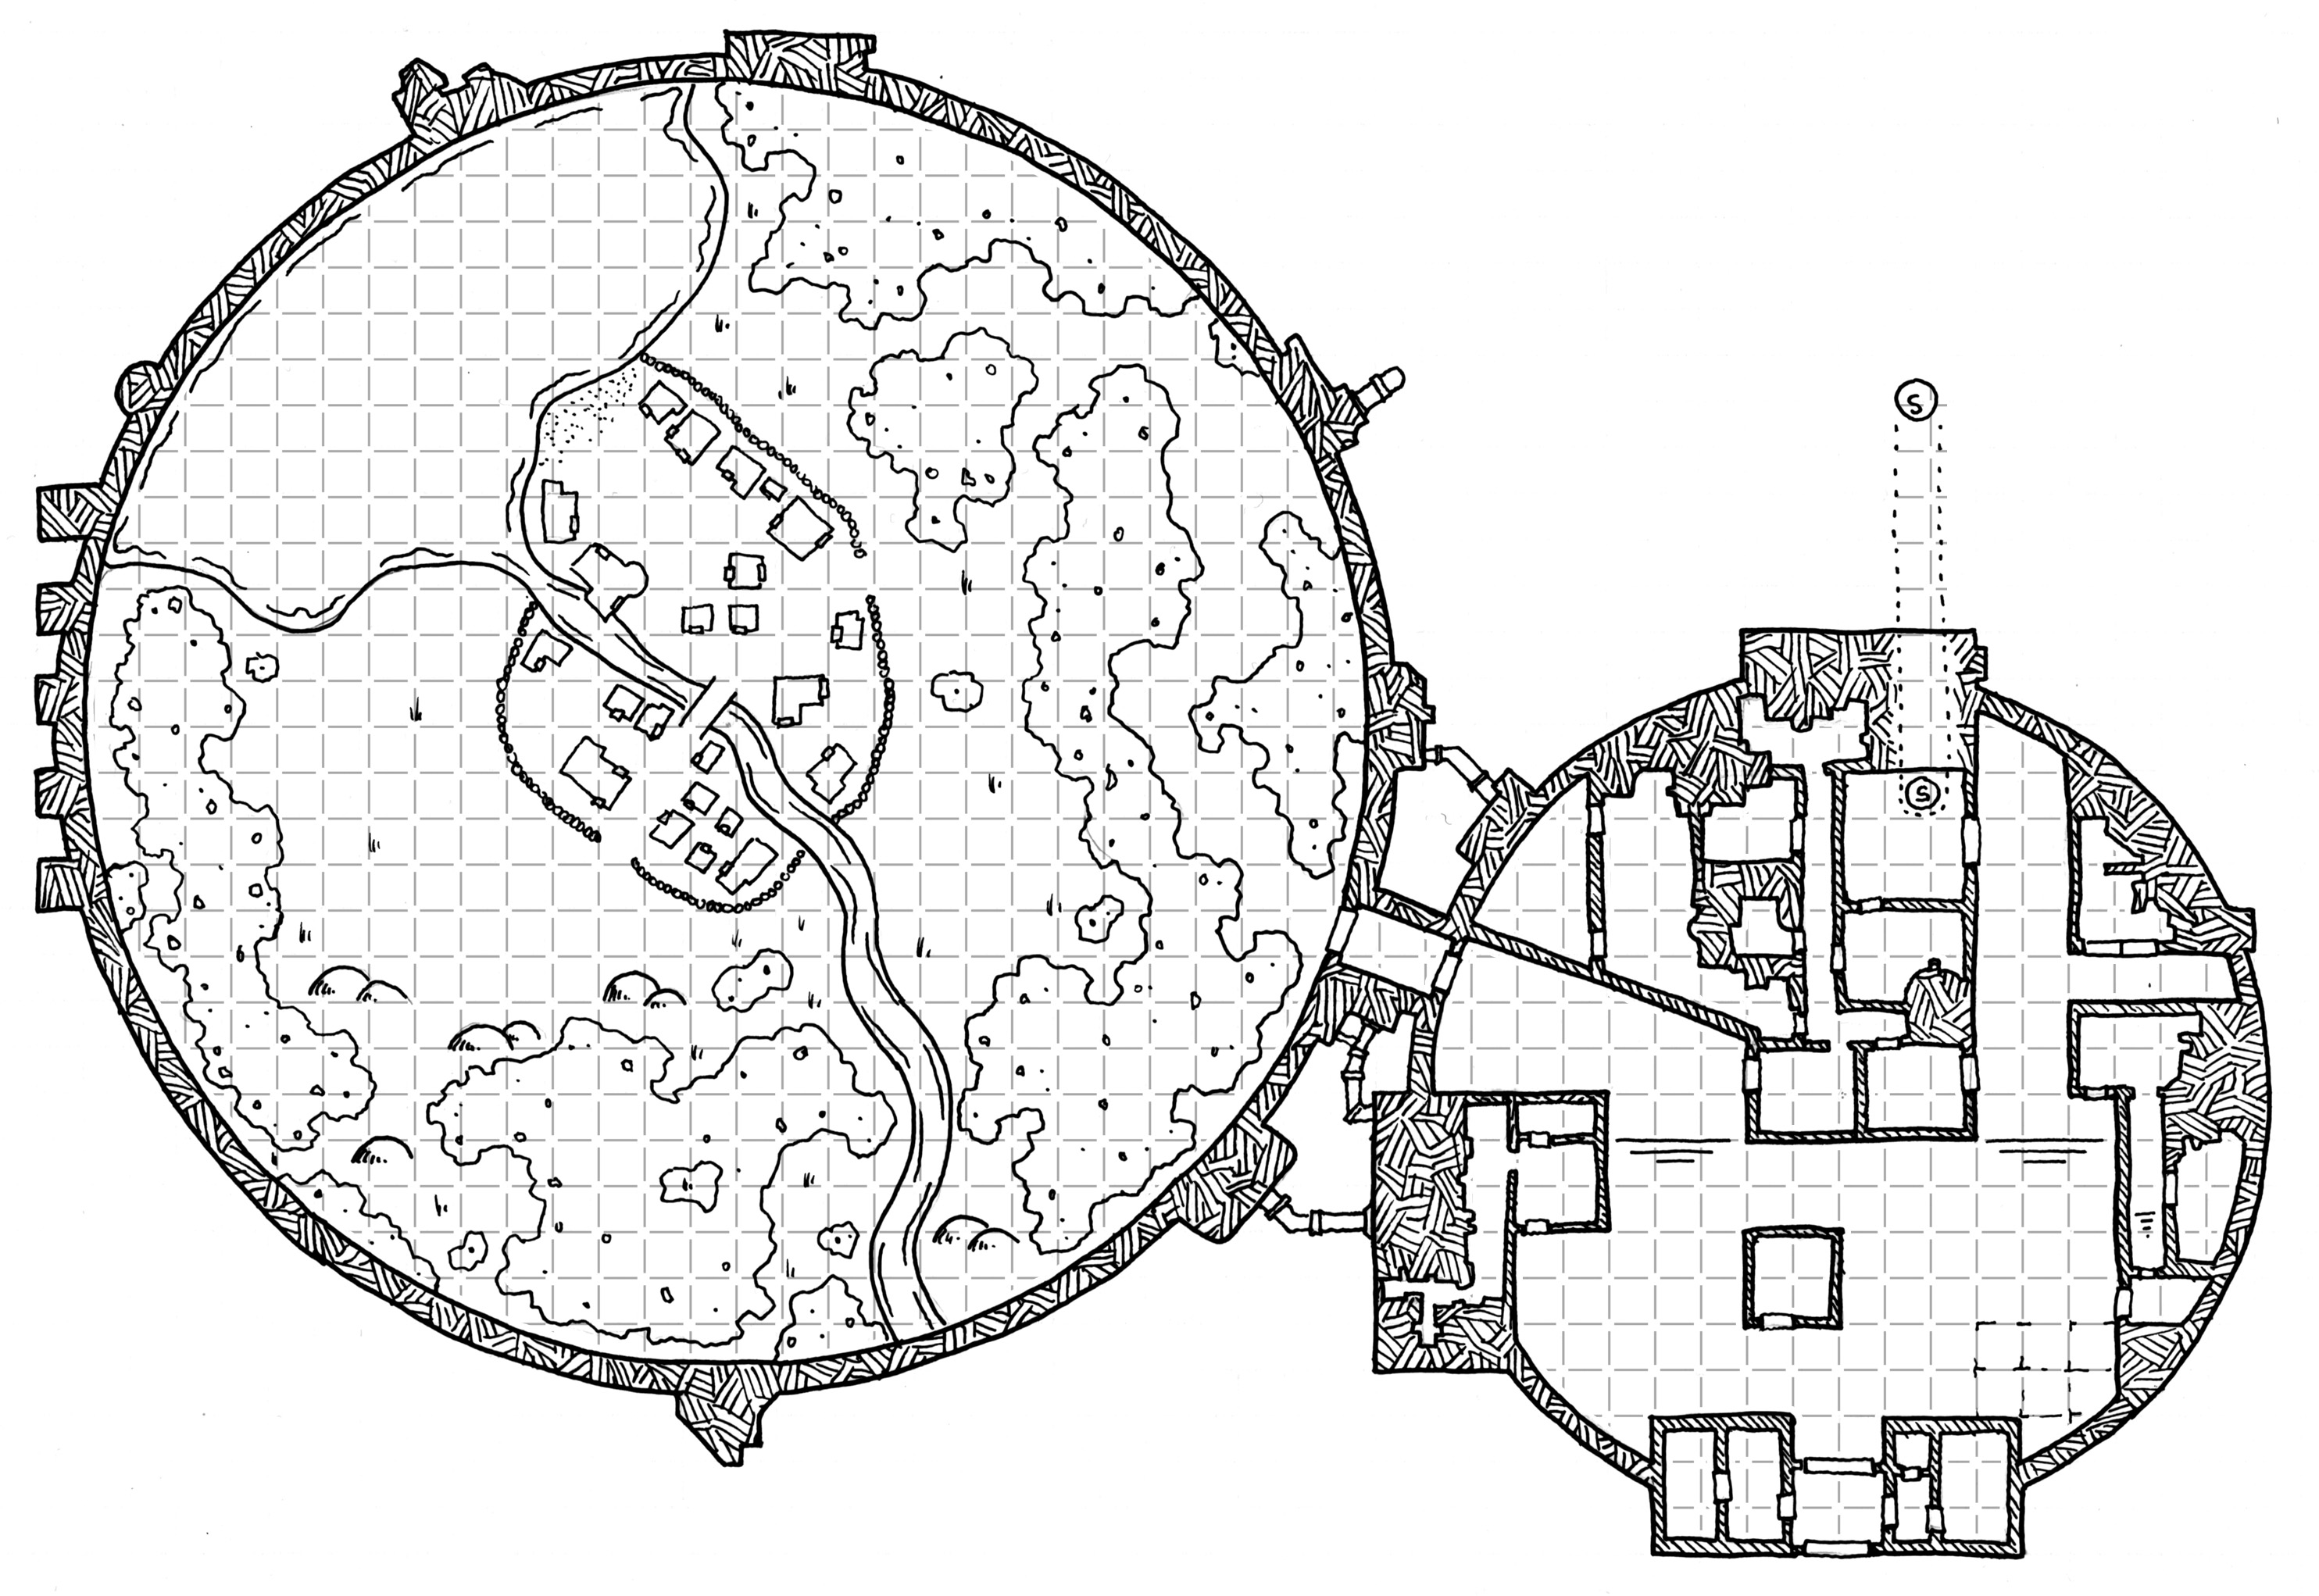 [Friday Map] R-AN (NorthCott) Sociological Research Domes